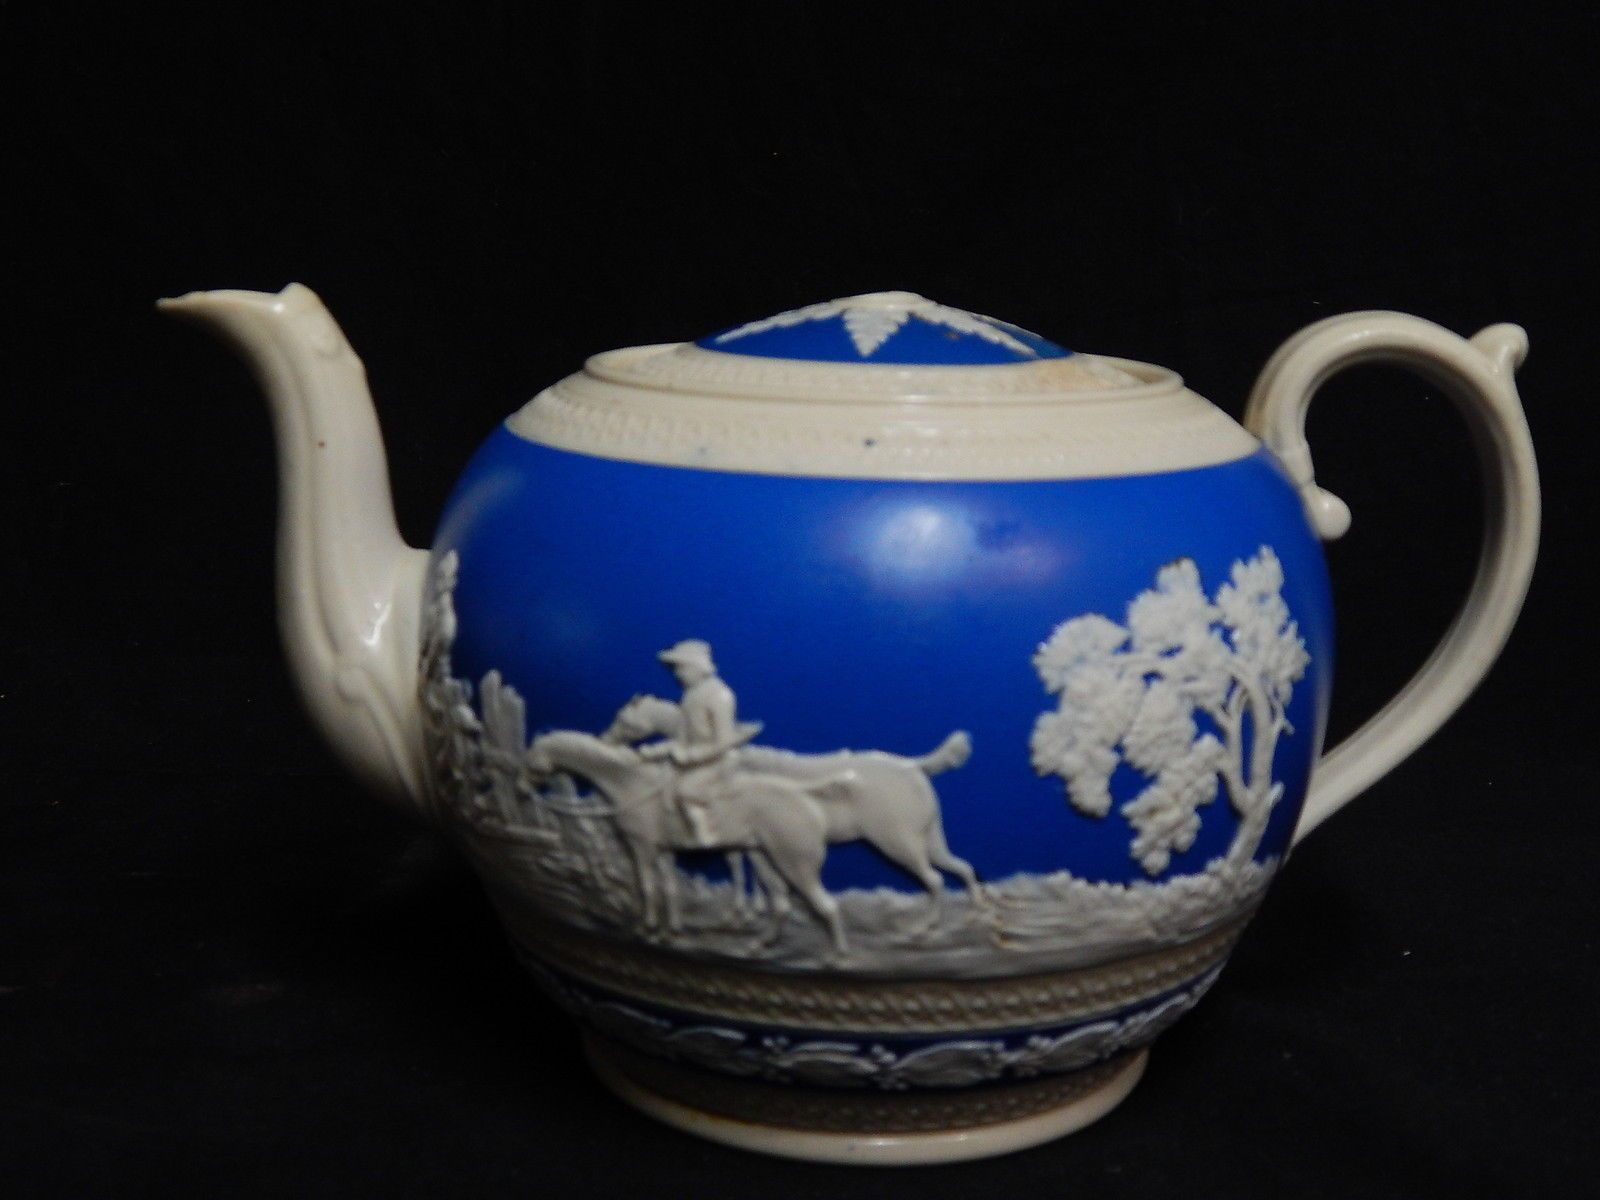 Vintage Copeland Spode Teapot England As Is - Ebay